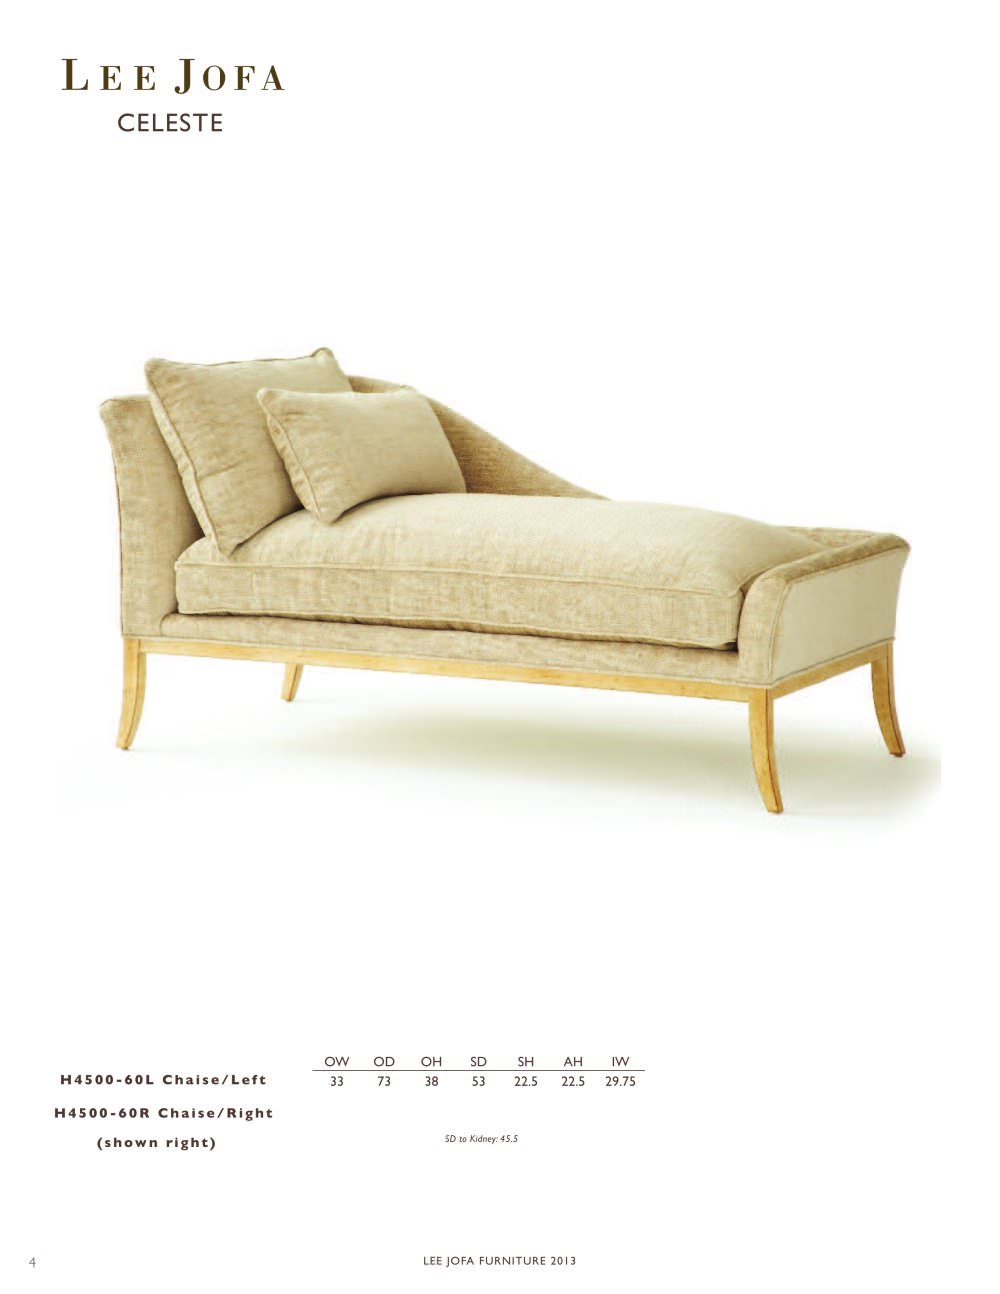 Lee Jofa-Furniture CATALOG 2013 - Lee Jofa - Page n° 14 - PDF ...